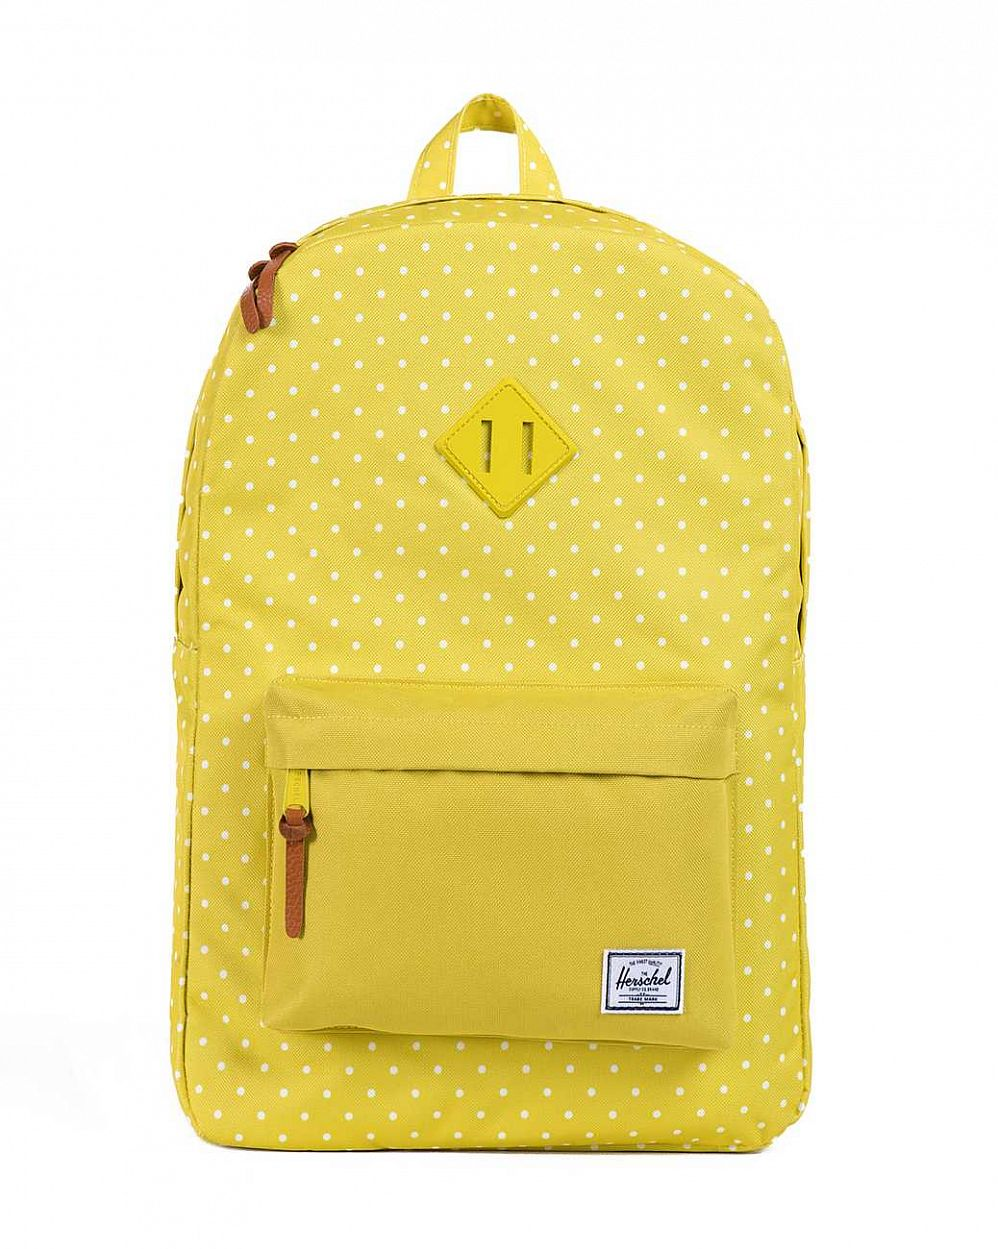 Рюкзак Herschel Heritage Apple Polka Dot отзывы